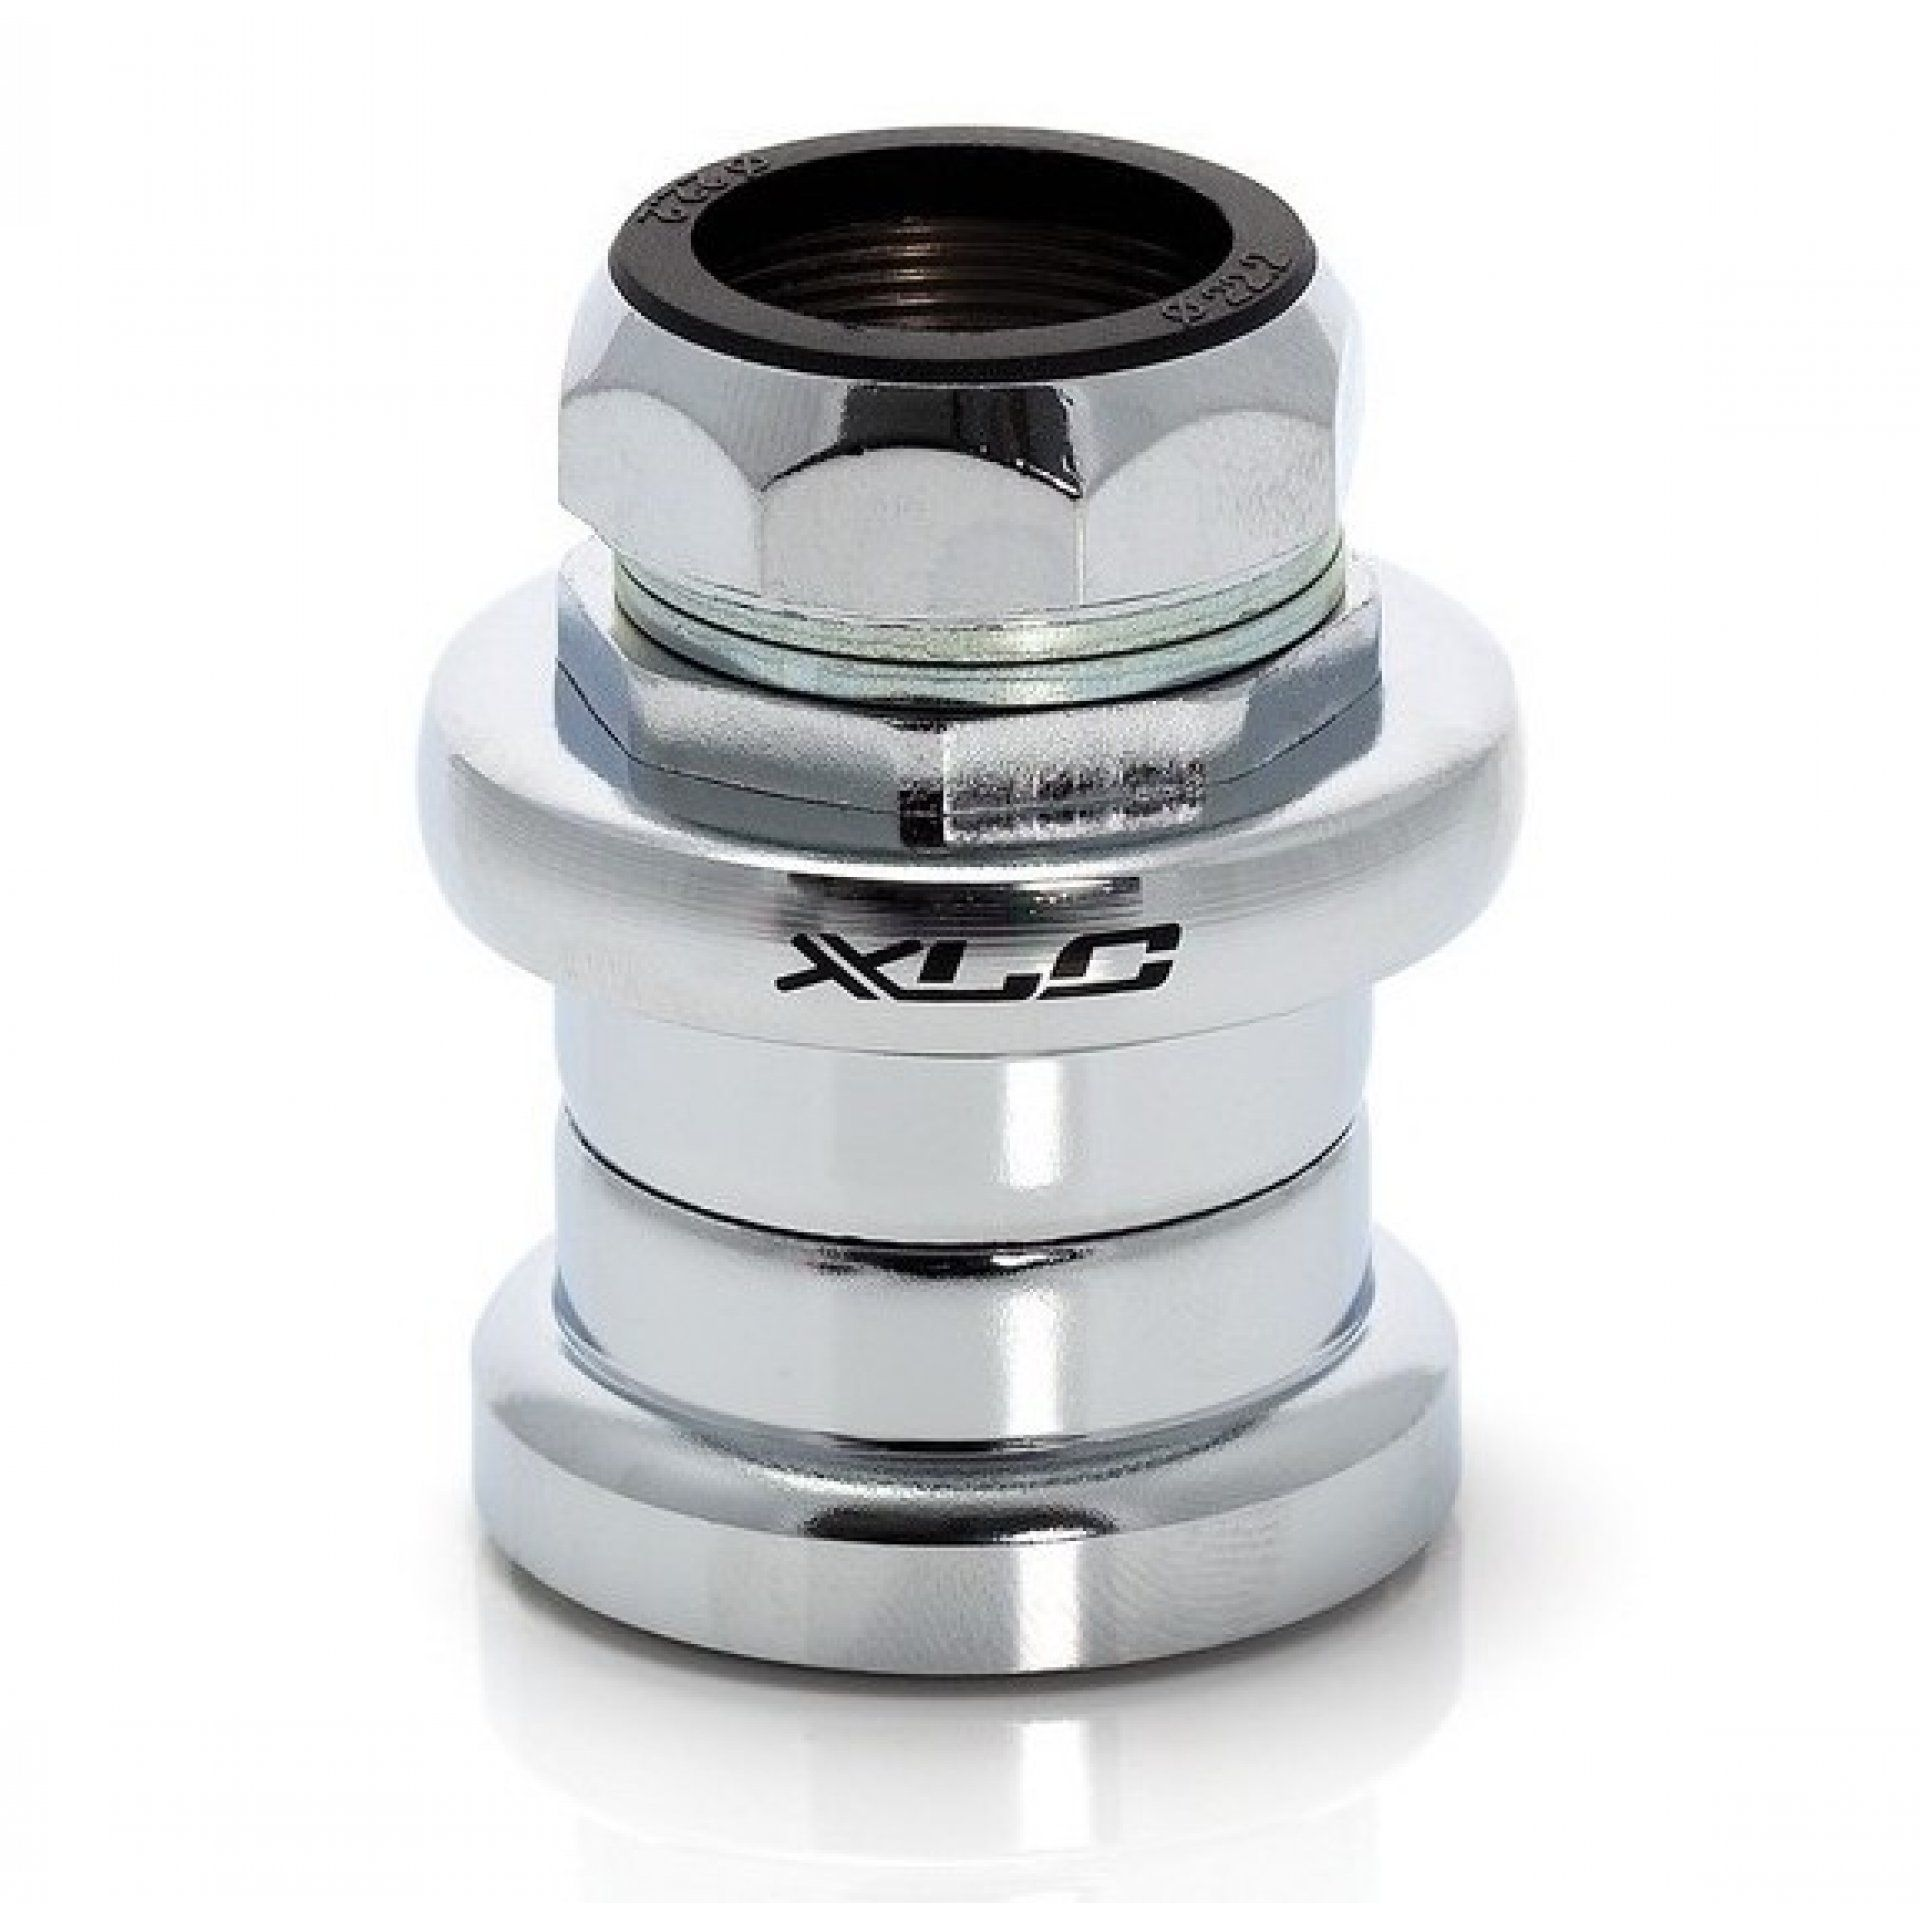 STERY XLC HS-S01 SILVER